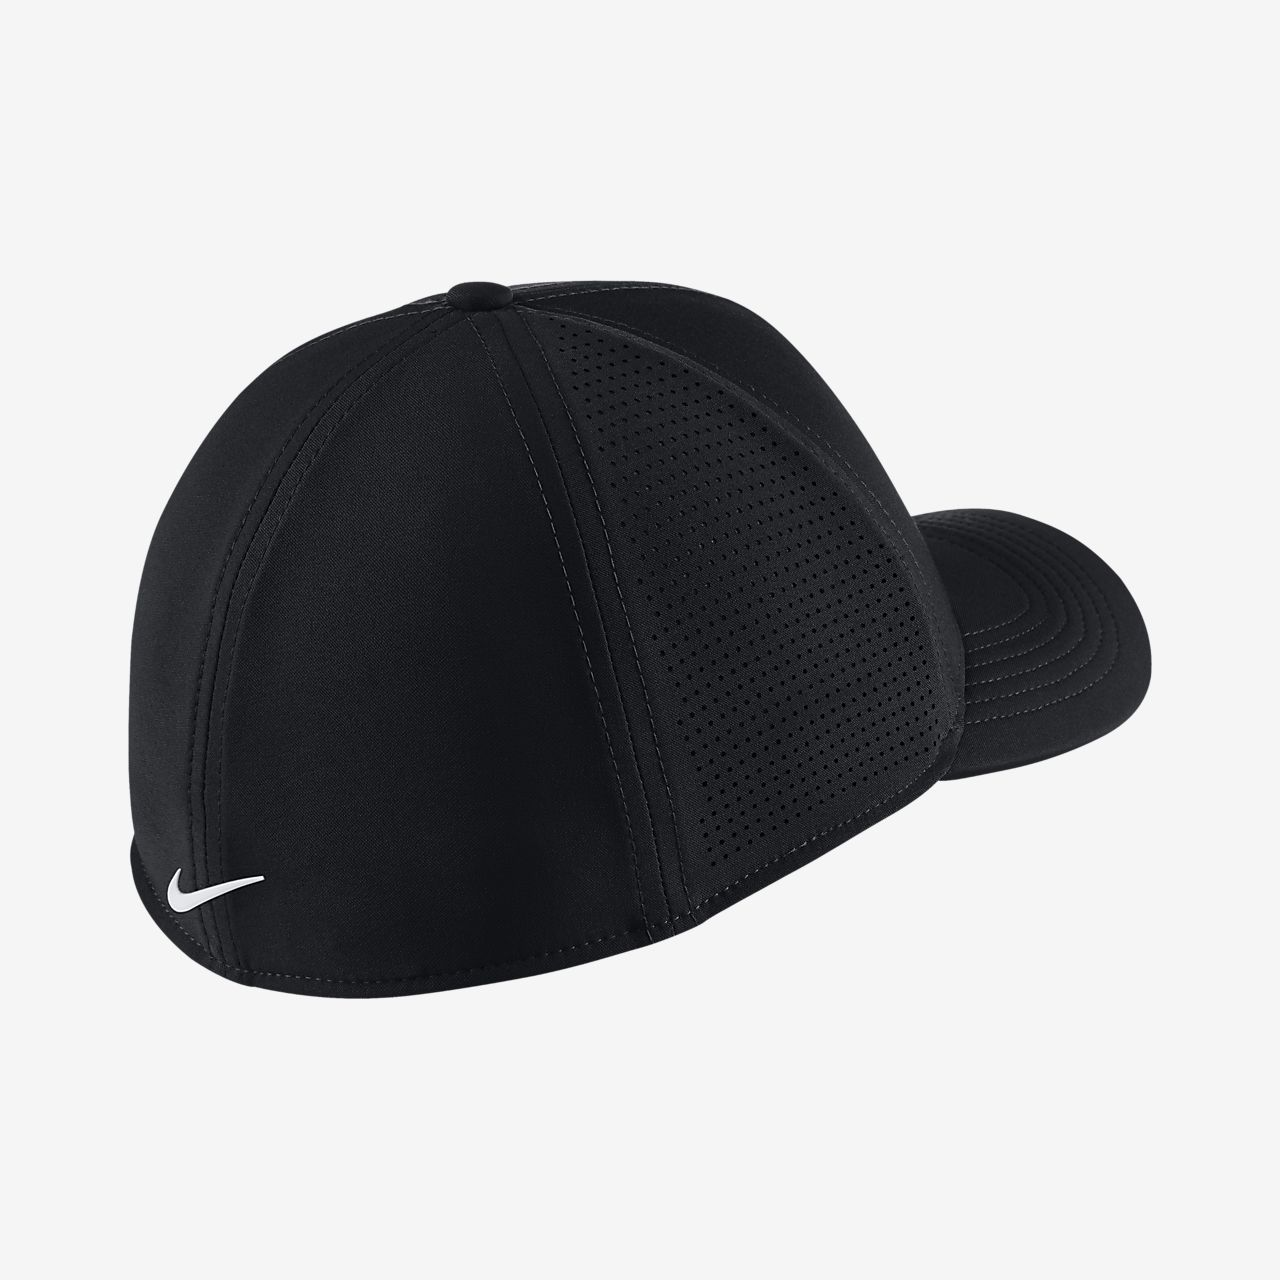 57f796a7e Nike AeroBill Classic 99 Fitted Golf Hat